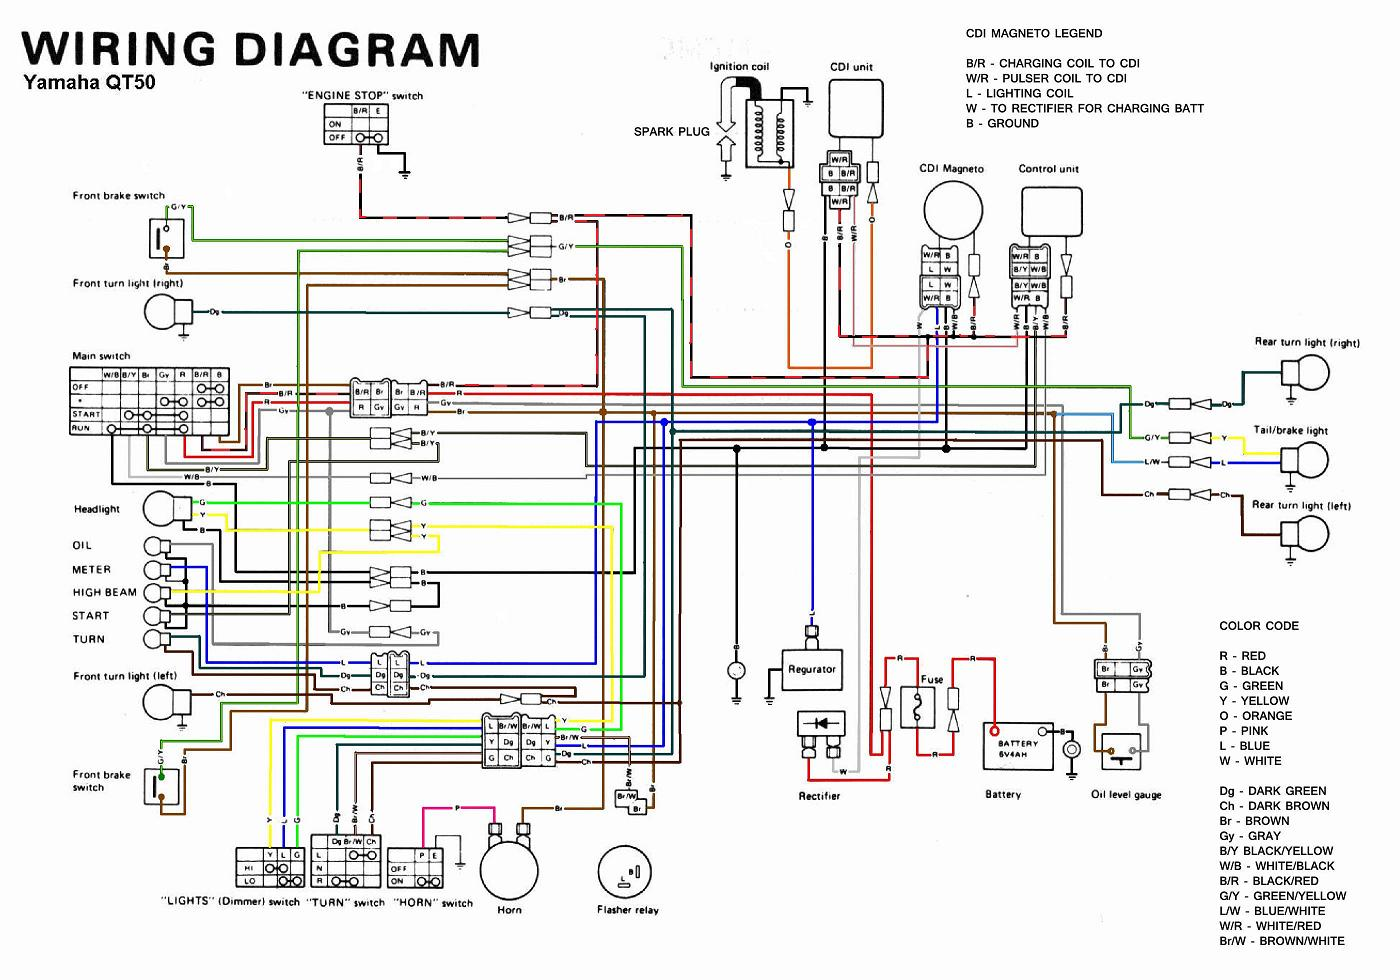 Yamaha Wiring Diagrams Wiring Diagram Schematics Yamaha 225 Wiring For Fuel  Tank Not Reading